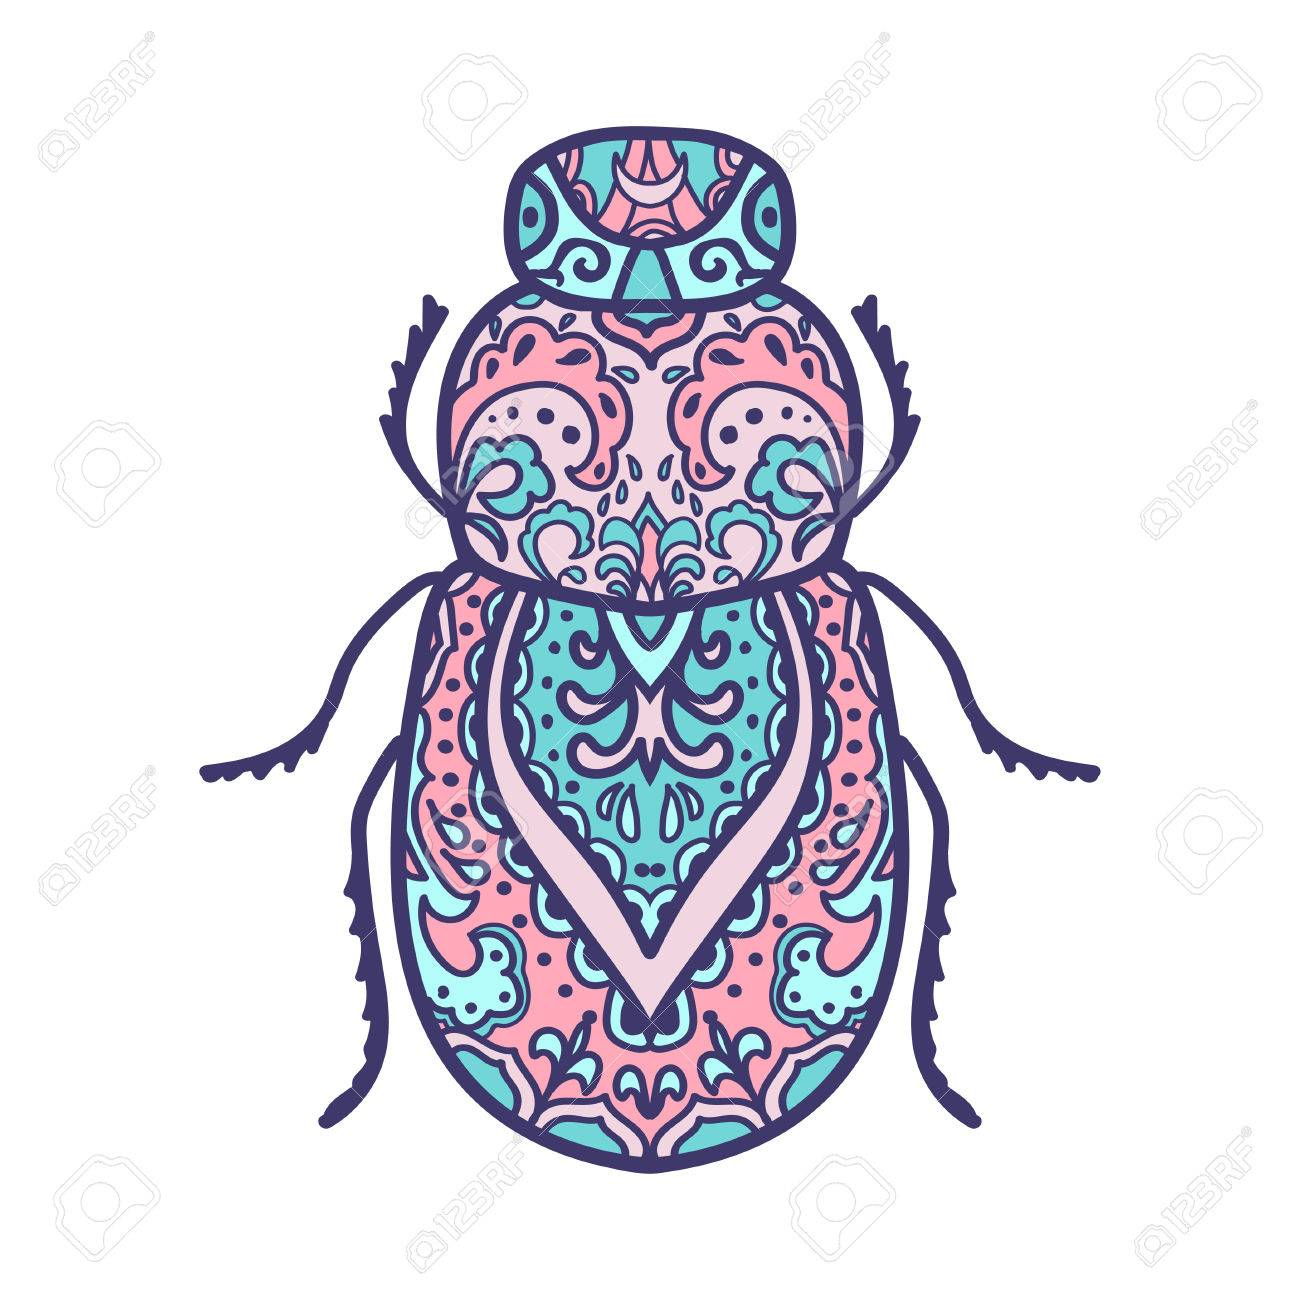 Scarab Beetle. Animals. Hand Drawn Doodle Insect. Ethnic Patterned Vector  Illustration. African